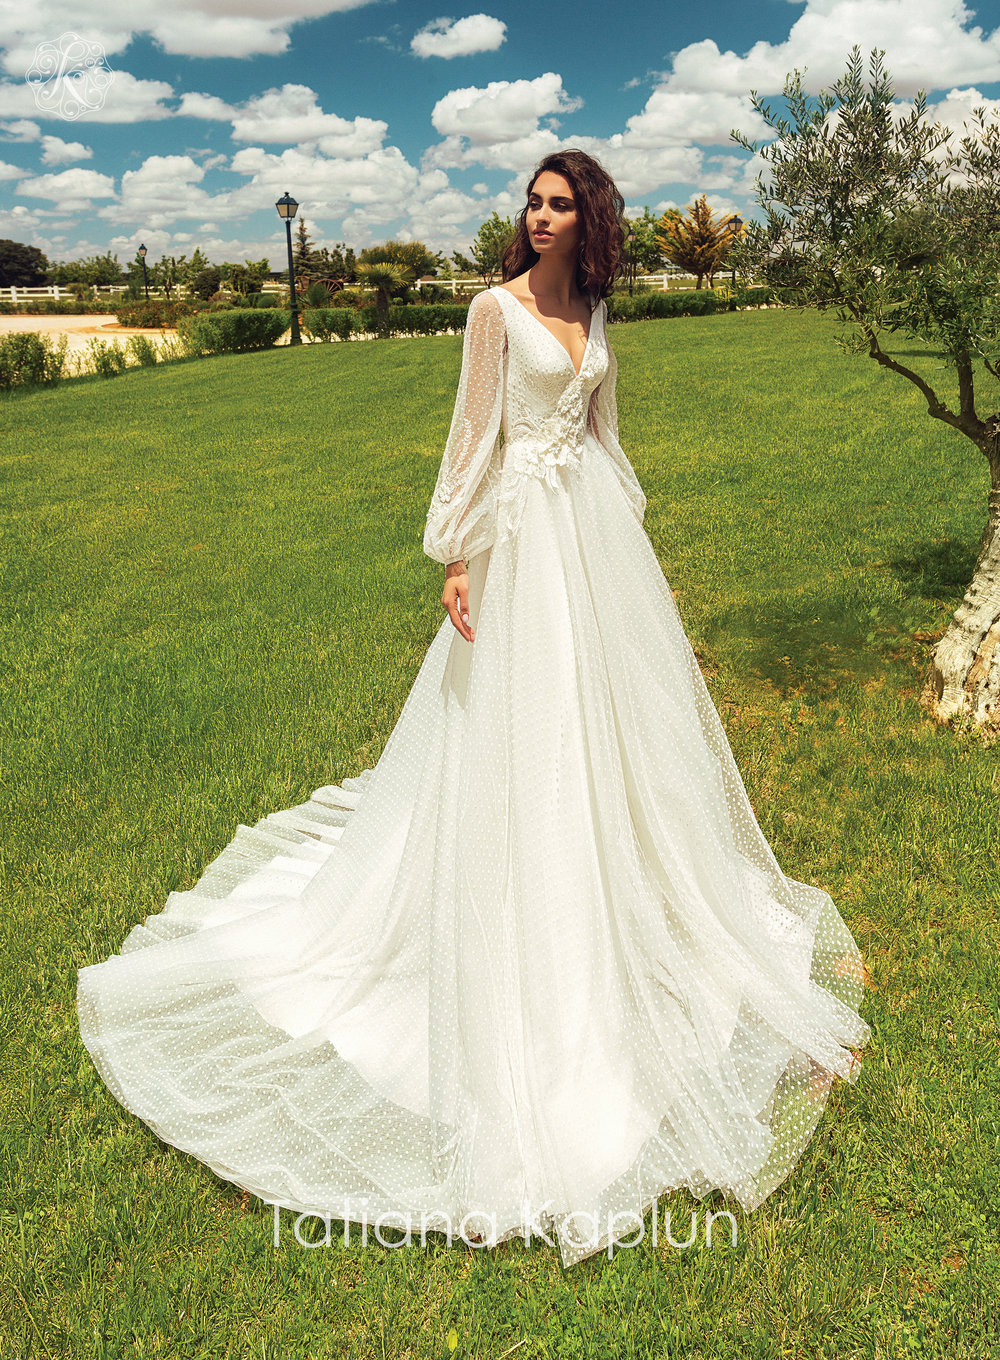 BLANCA wedding dress by Tatiana Kaplun